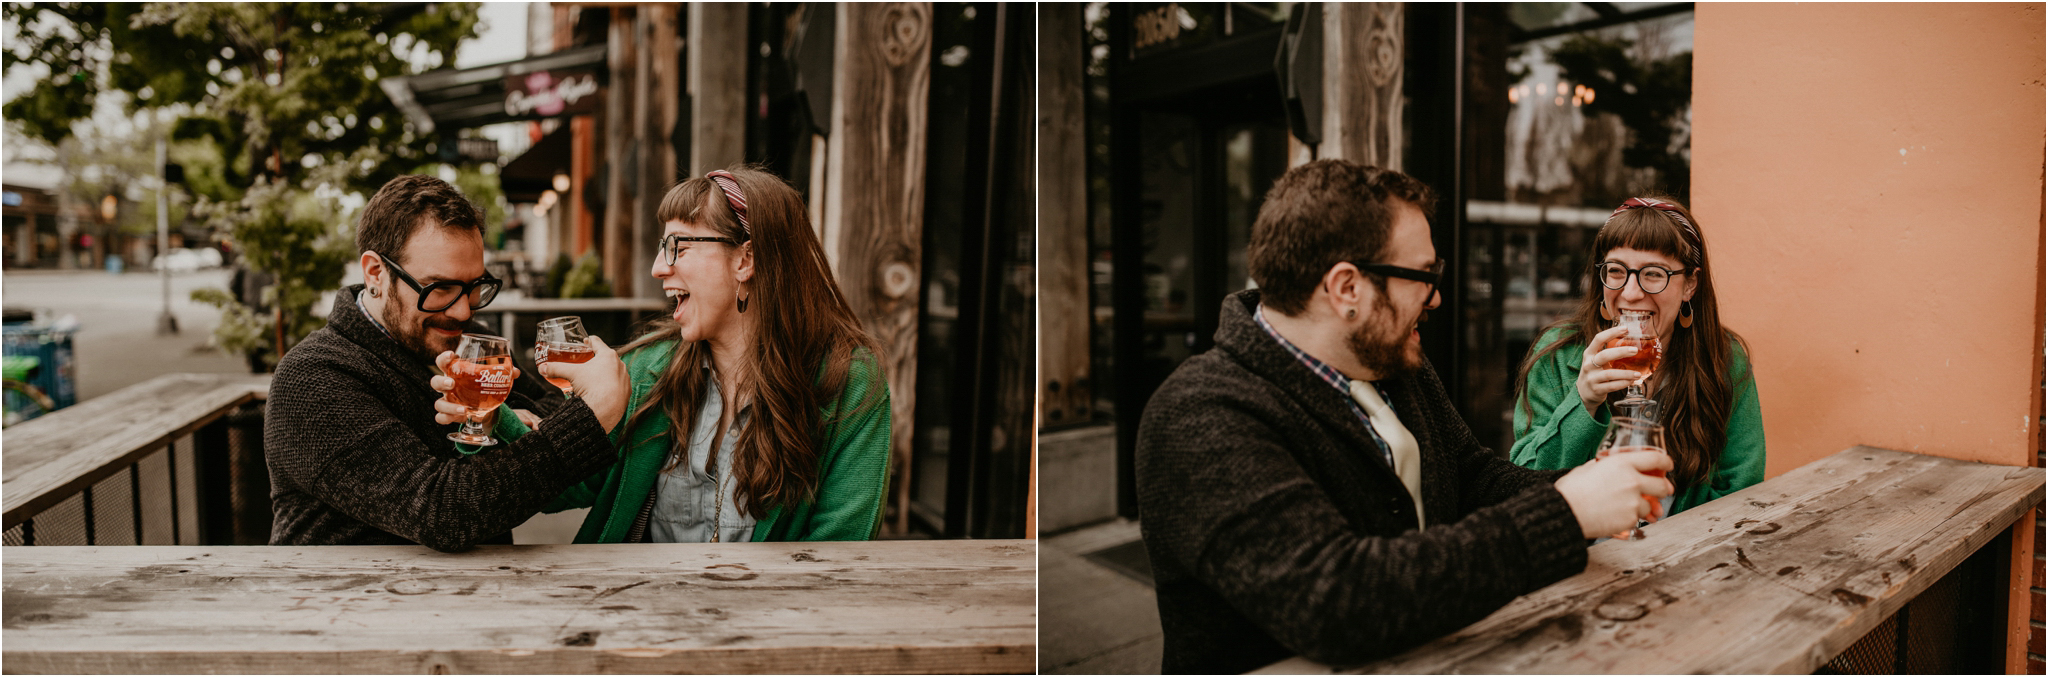 jaimie-and-jake-ballard-seattle-engagement-session-002.jpg